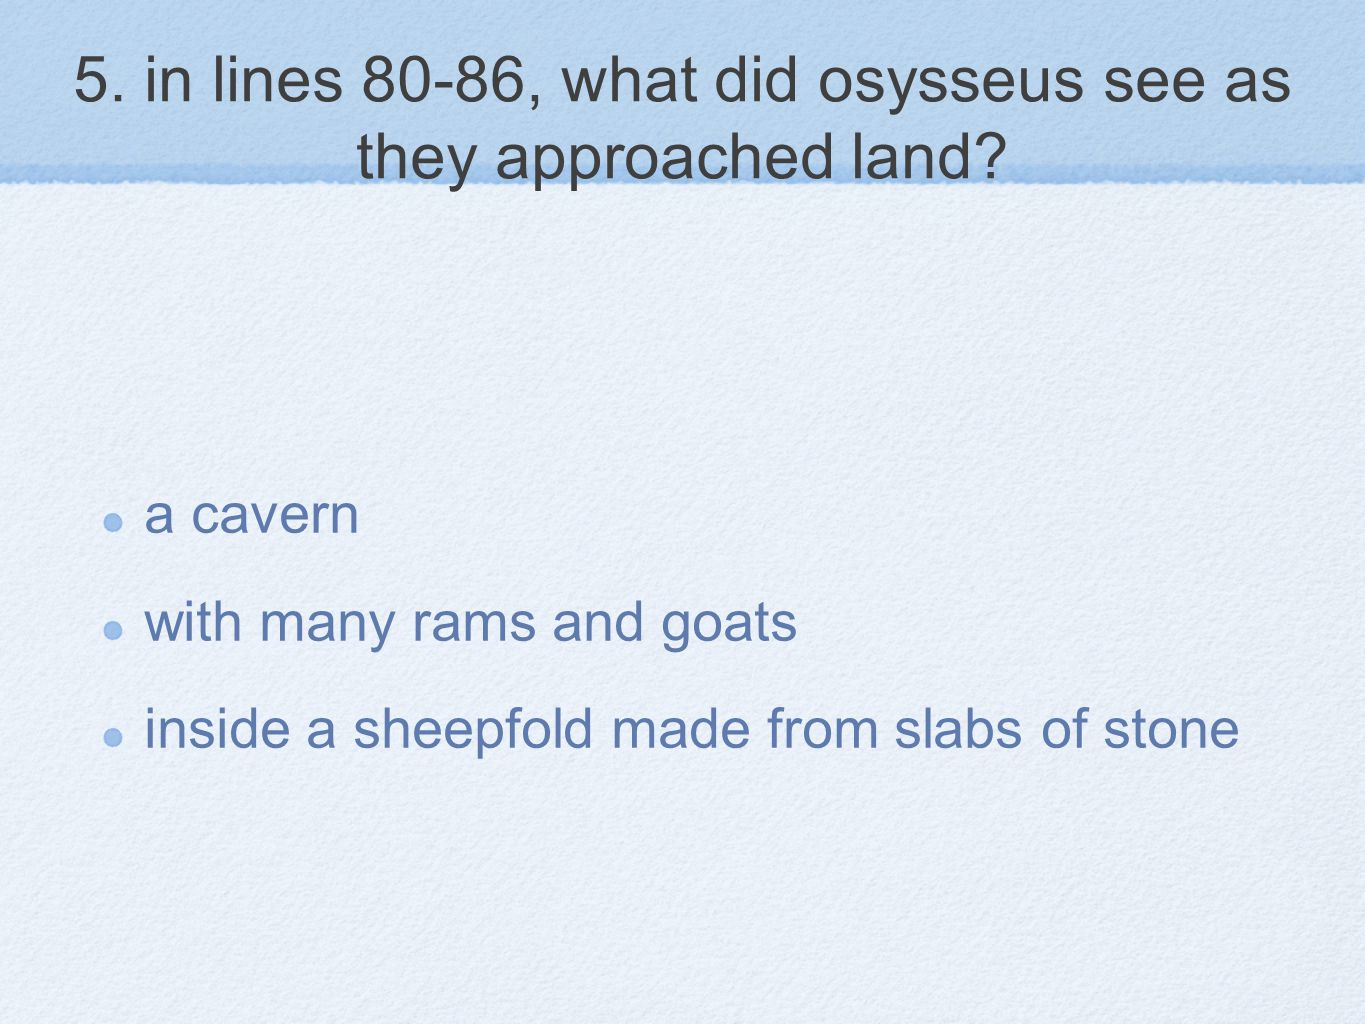 5. in lines 80-86, what did osysseus see as they approached land